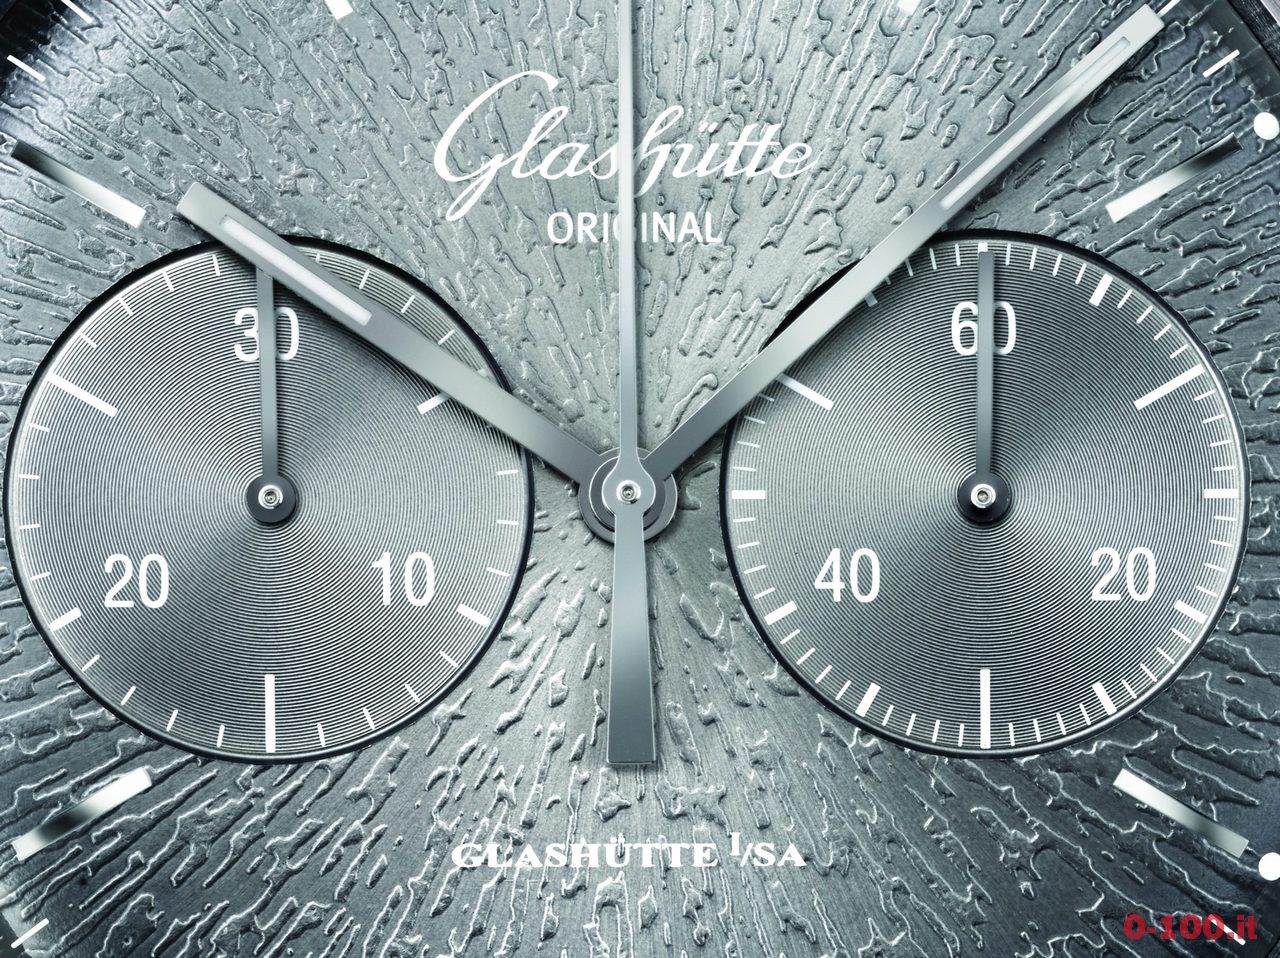 glashutte-original-sixties-iconic-square-collection-limited-edition-prezzo-price_0-1009